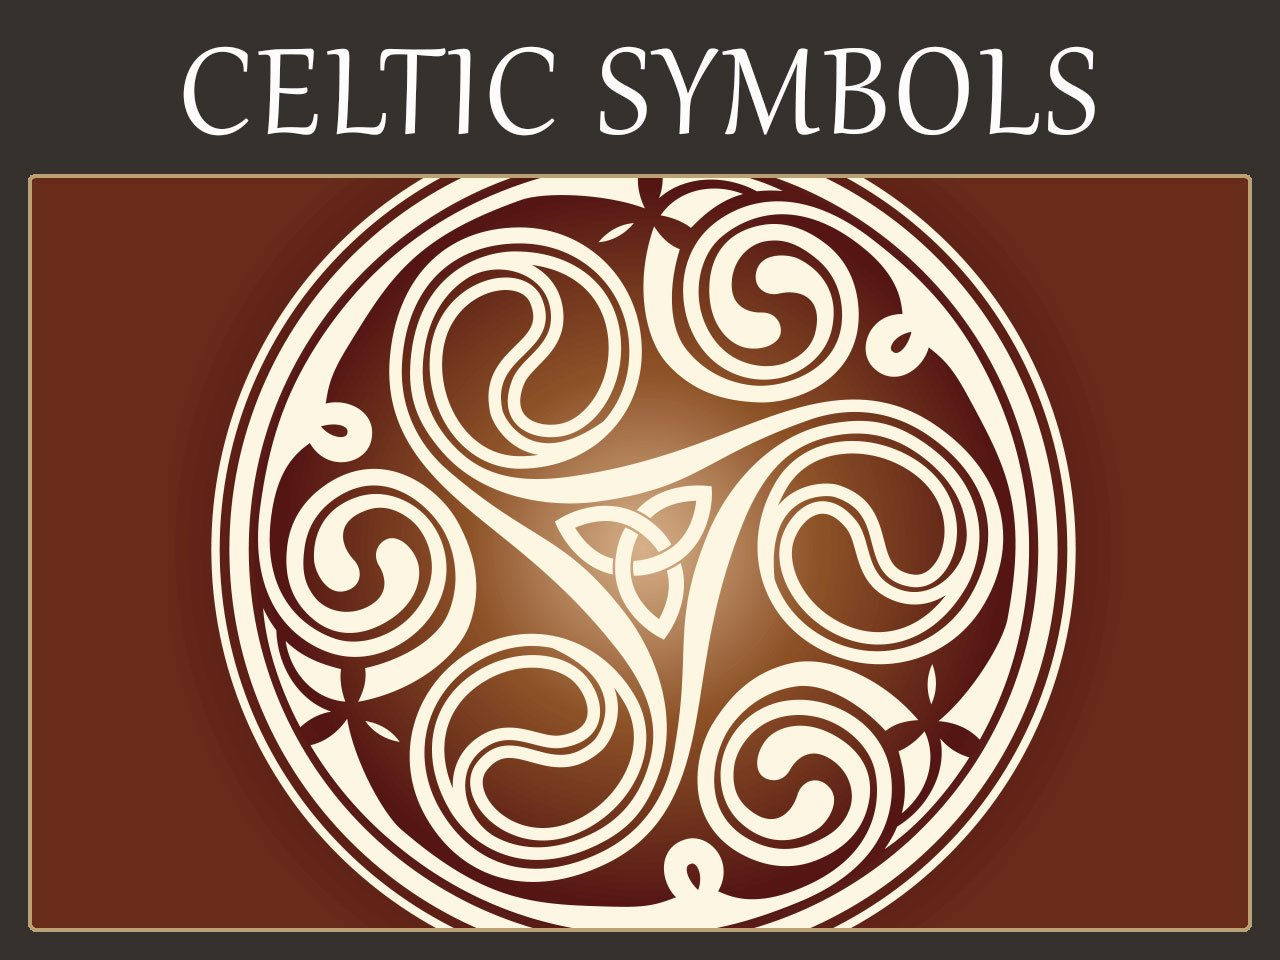 Symbols and meanings animals crystals dreams flowers native celtic symbols meanings 1280x960 buycottarizona